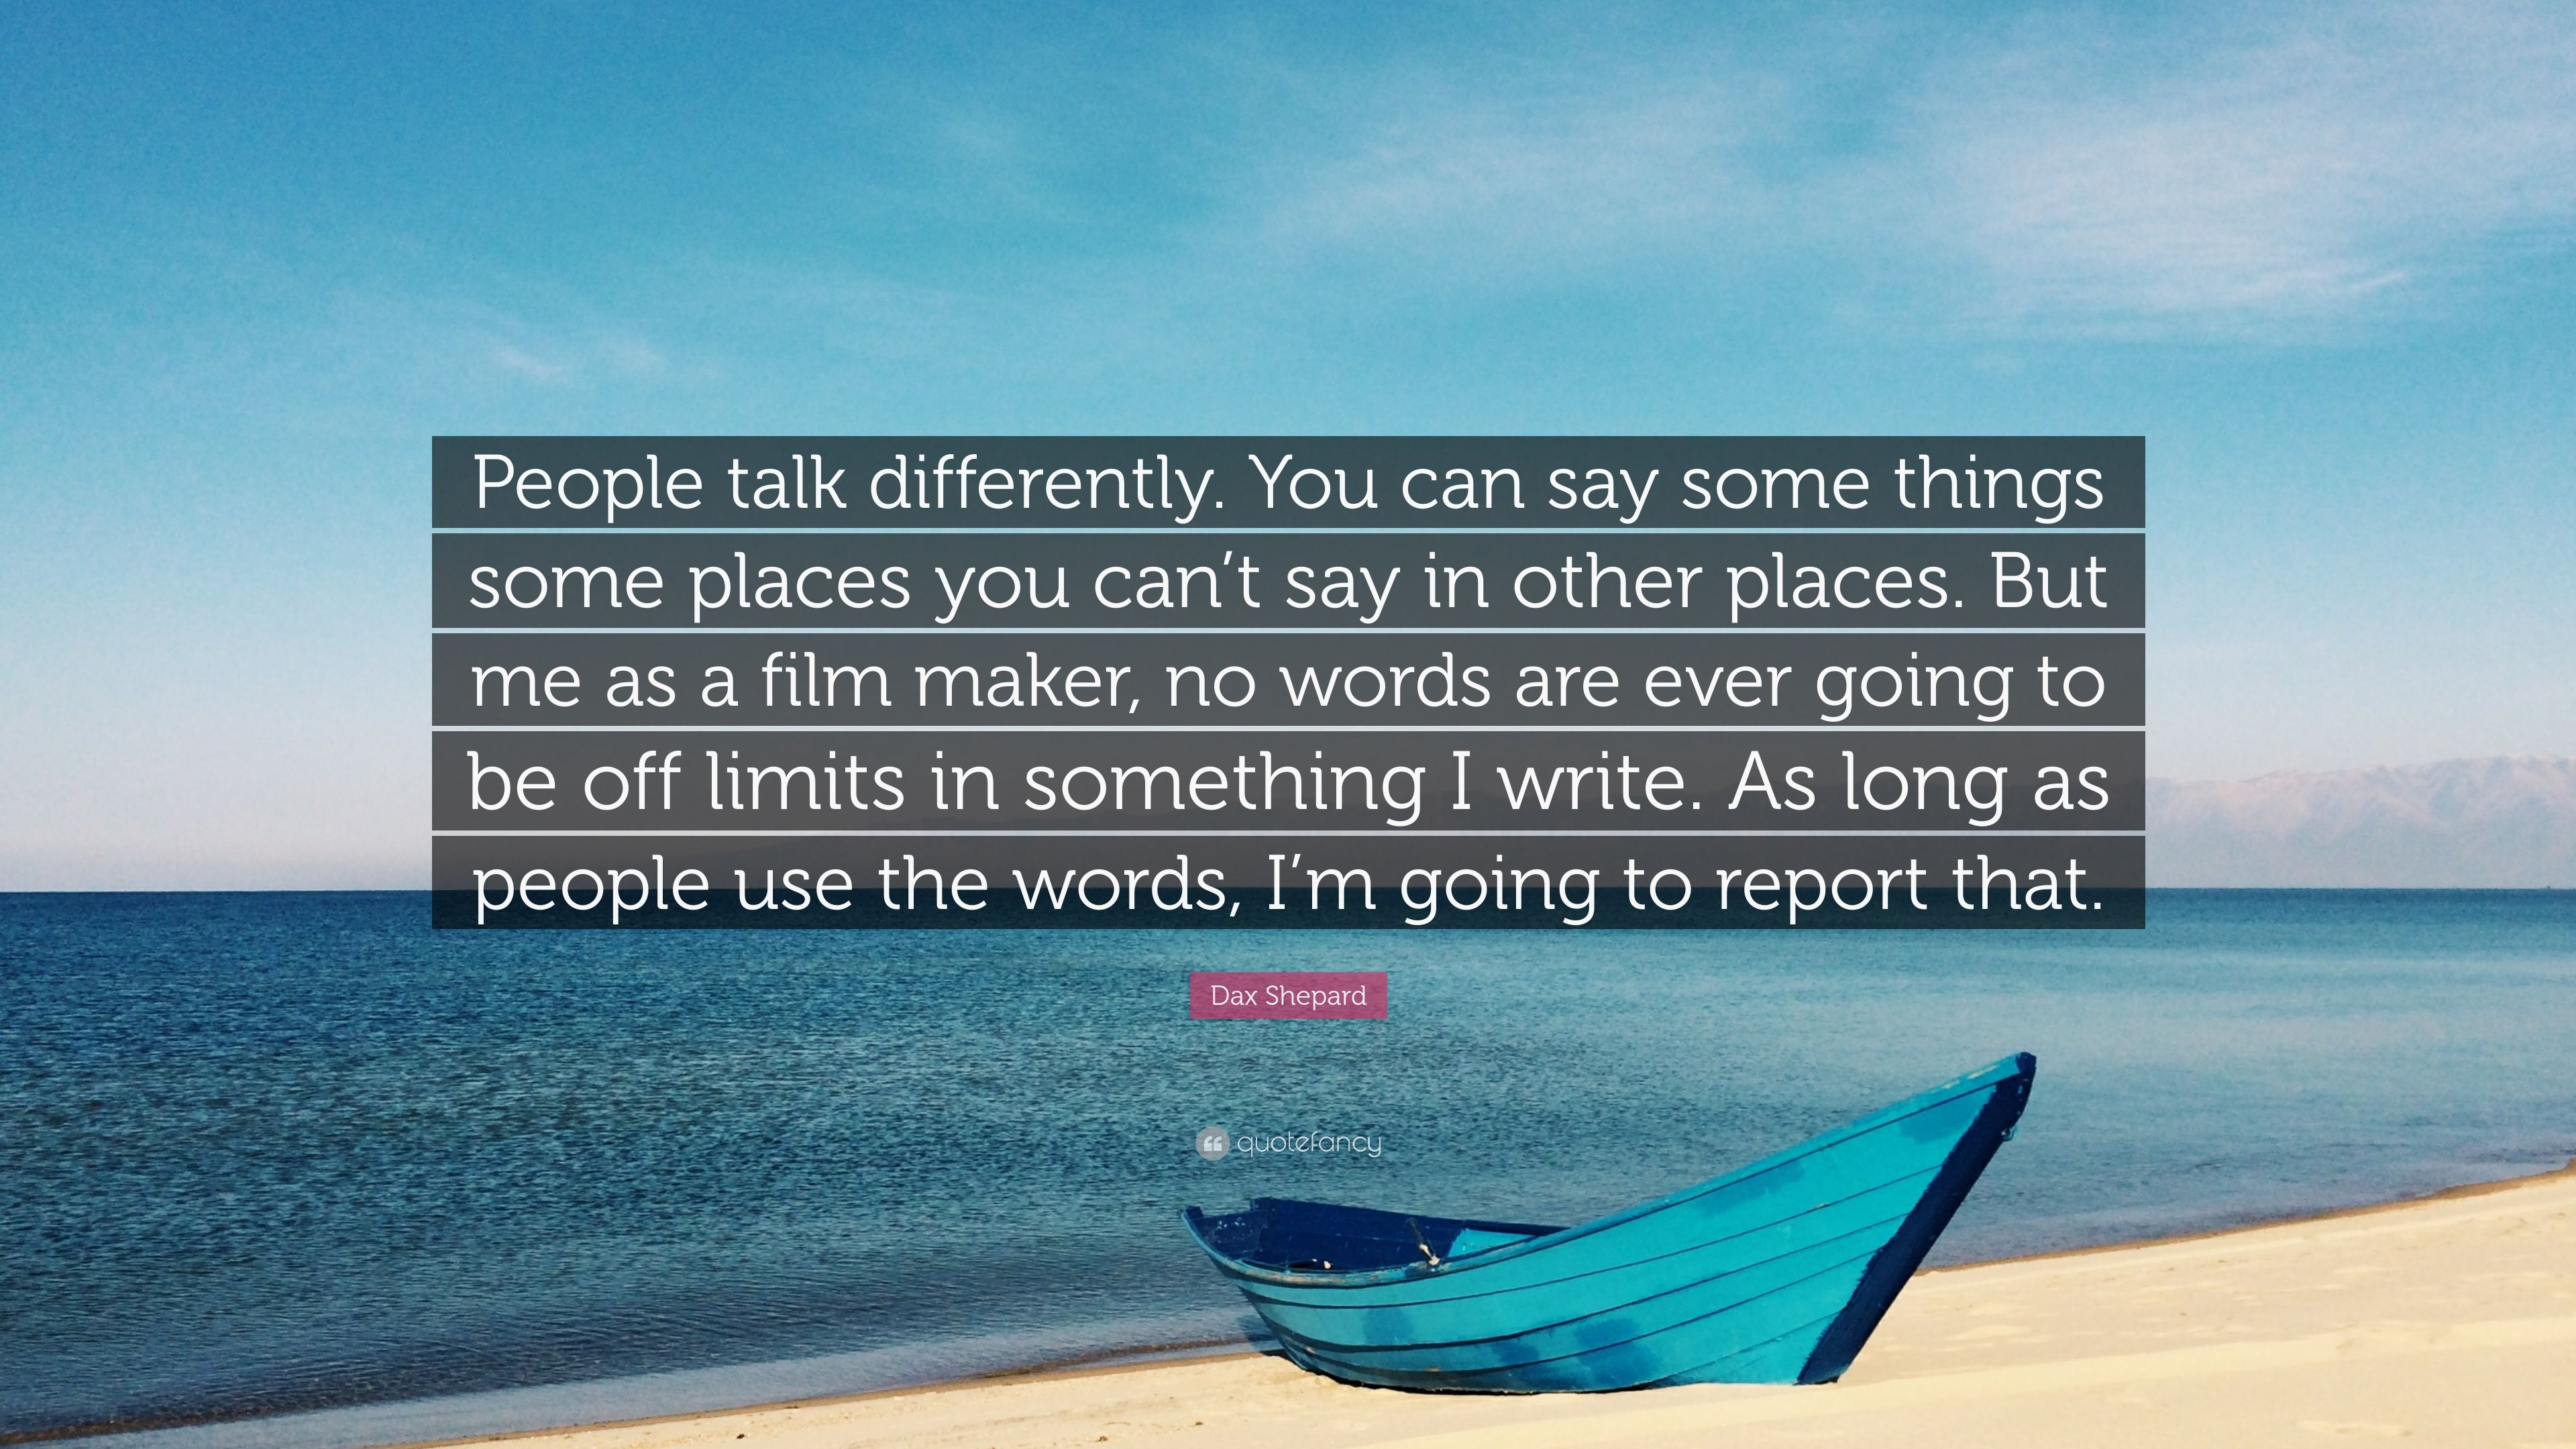 words to talk about other places